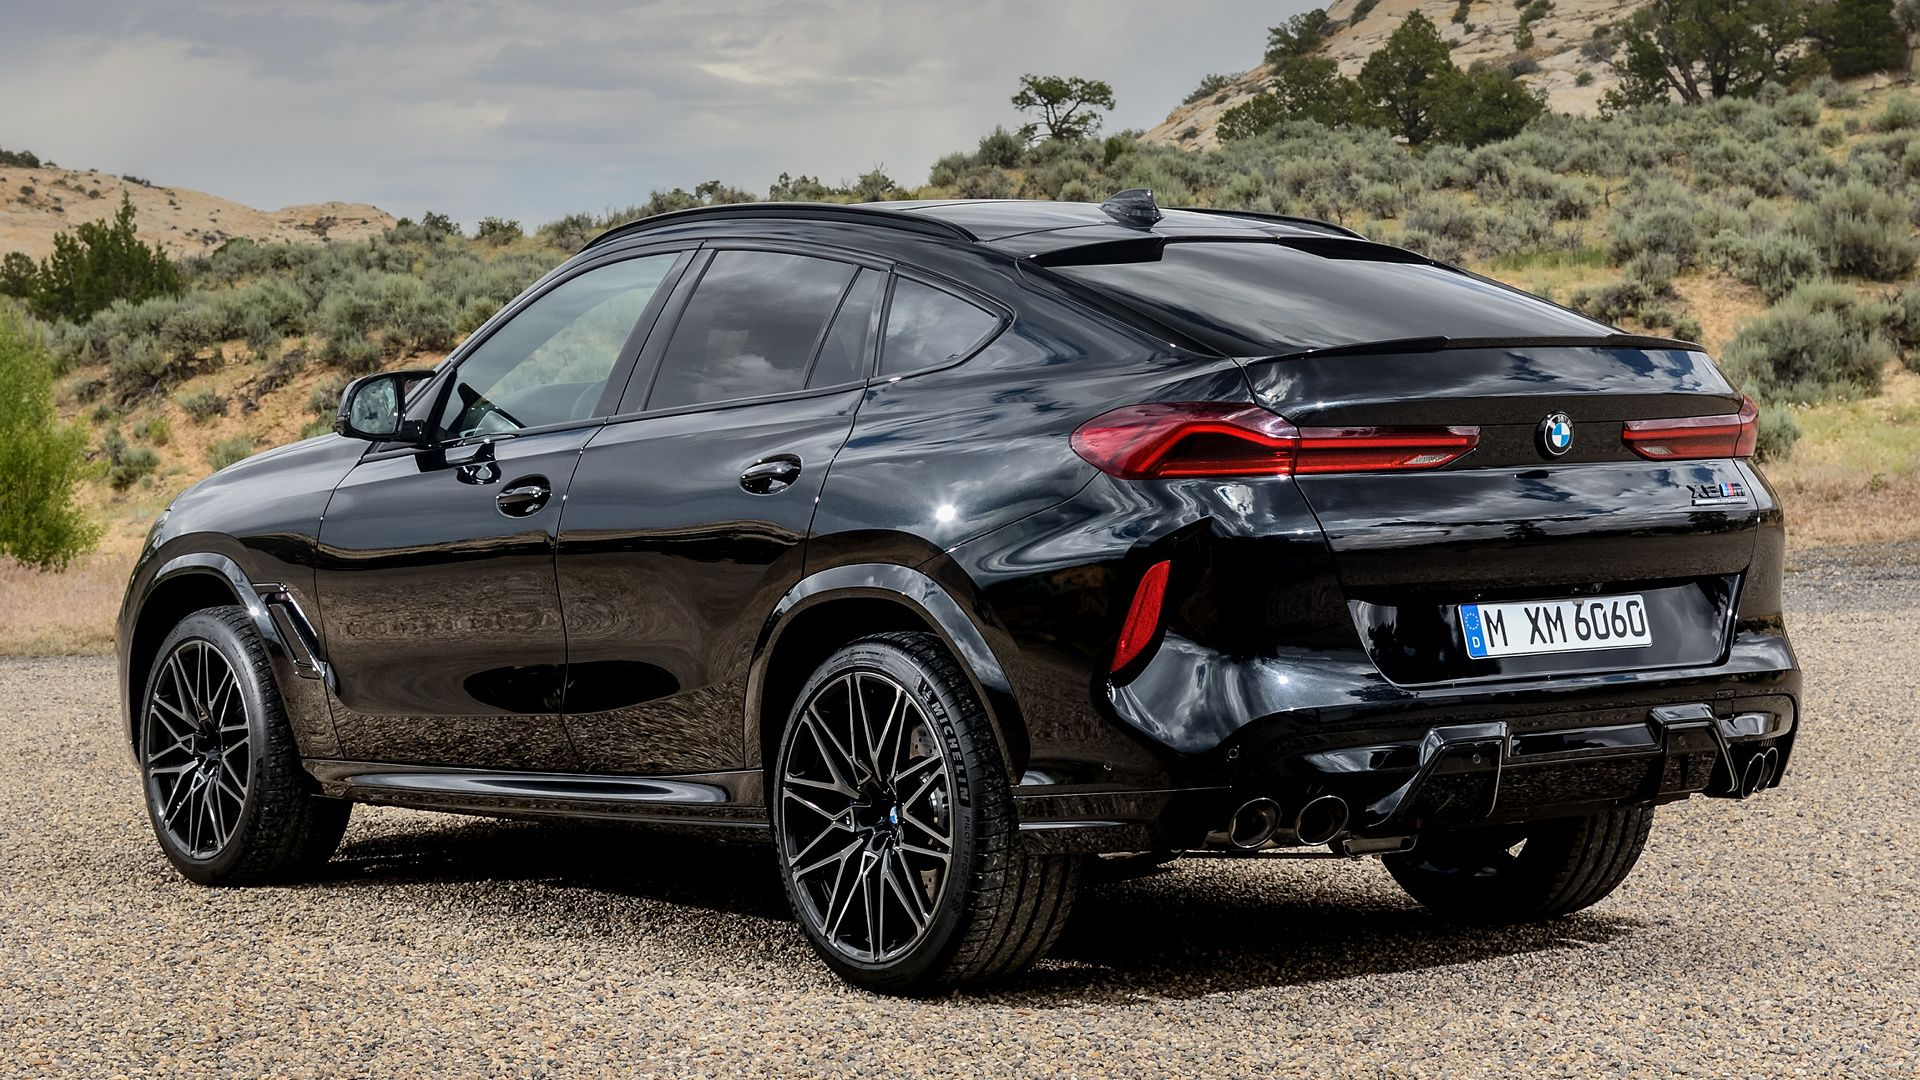 Vehicles Bmw X6 M Competition Bmw Crossover Car Suv Luxury Car Black Car Car Hd Wallpaper Background Imageq Wallpaper Ca In 2020 Bmw X6 Bmw Wallpapers Crossover Cars